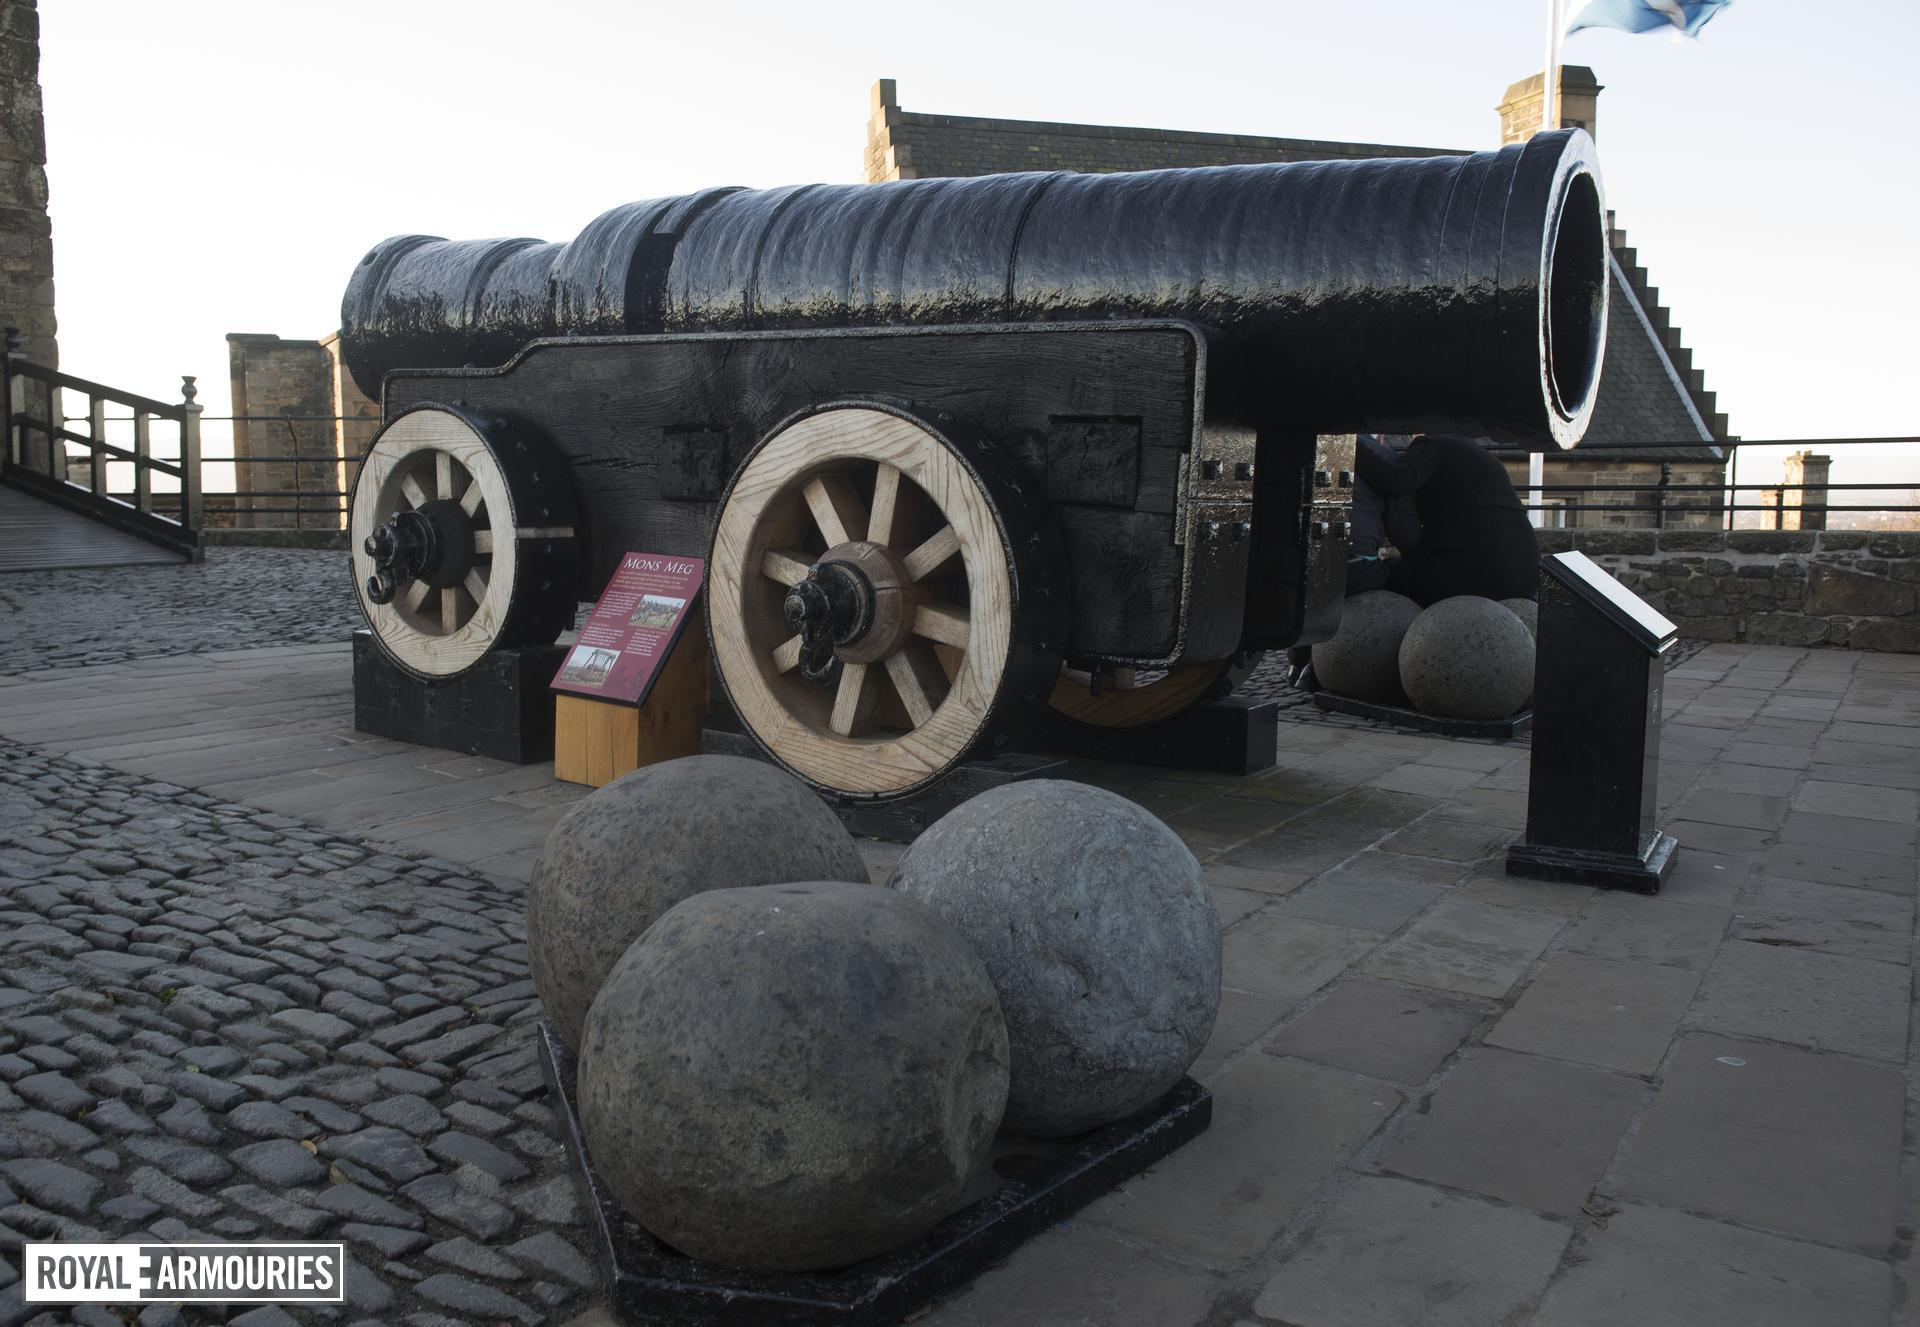 Iron bombard known as Mons Meg. Flemish, Mons, mid-15th century (XIX.13) Supplied by Jehan Cambier to Duke Philip the Good of Burgundy. On loan to Historic Scotland and on display at Edinburgh Castle.